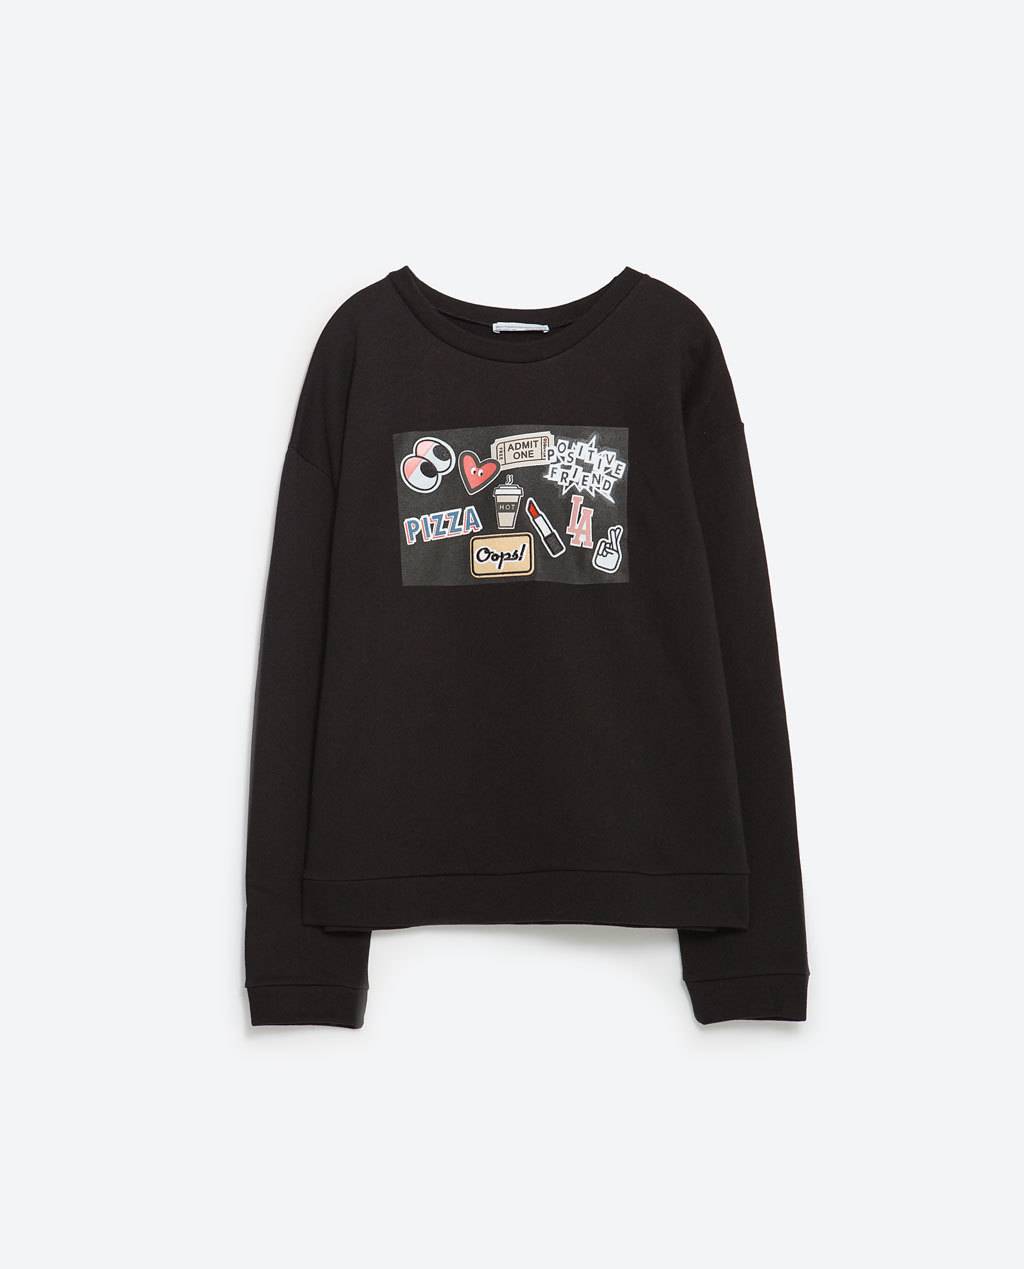 Sweatshirt With Patches - neckline: round neck; style: standard; secondary colour: white; predominant colour: black; occasions: casual; length: standard; fit: standard fit; sleeve length: long sleeve; sleeve style: standard; pattern type: fabric; pattern size: light/subtle; pattern: patterned/print; texture group: jersey - stretchy/drapey; season: a/w 2015; wardrobe: highlight